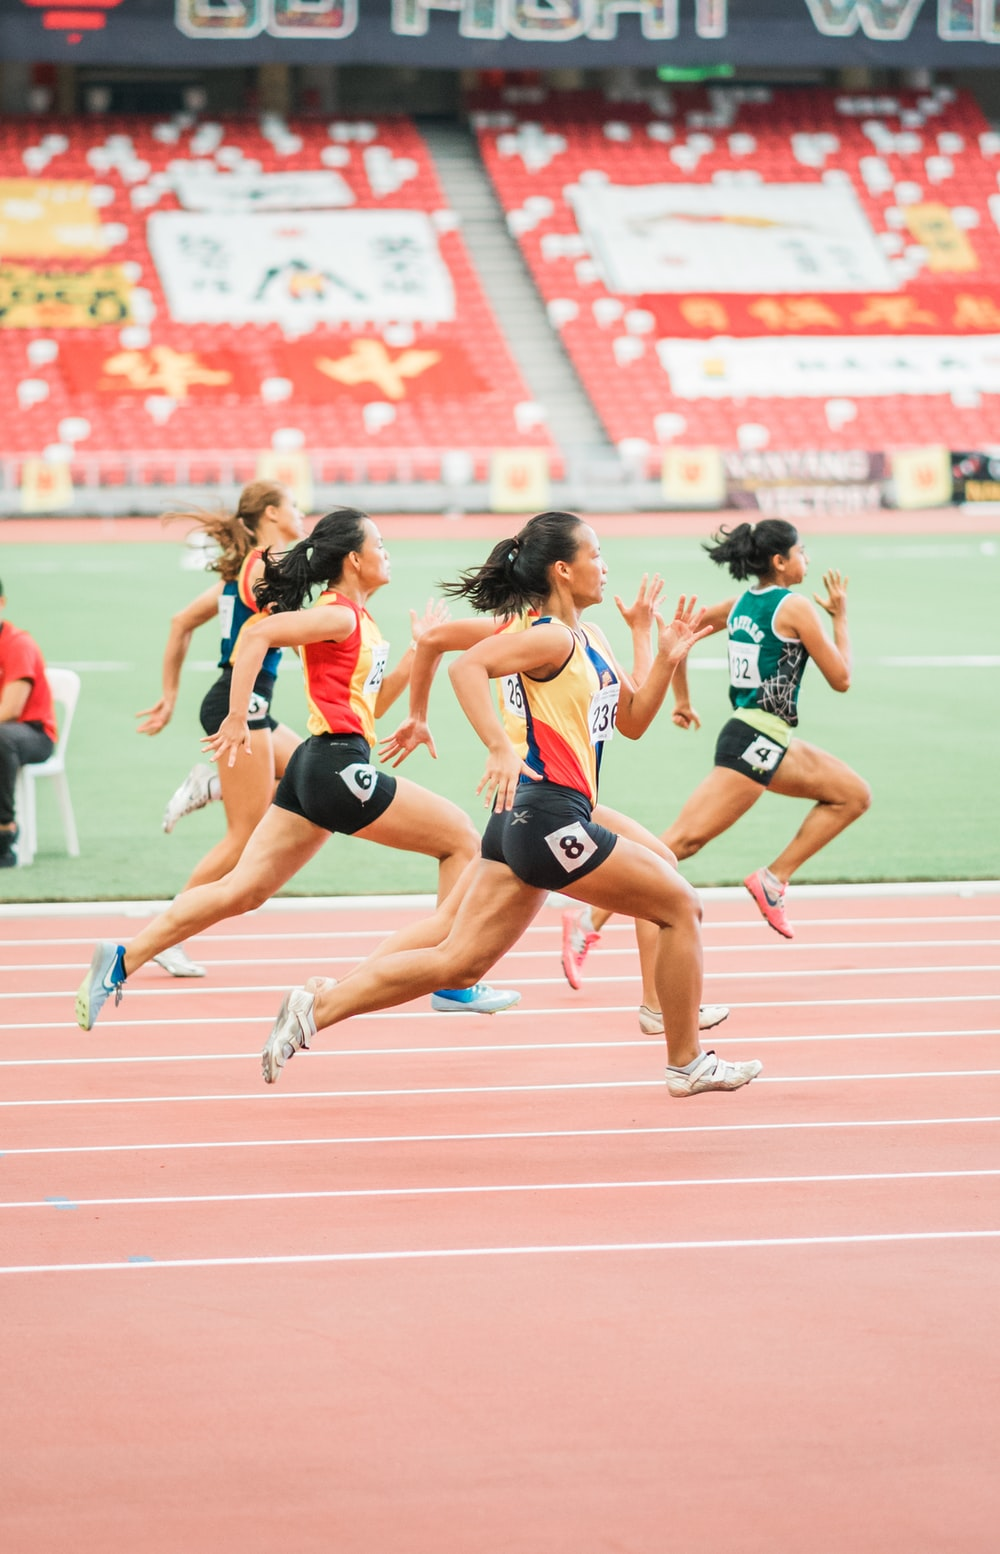 women running on track field